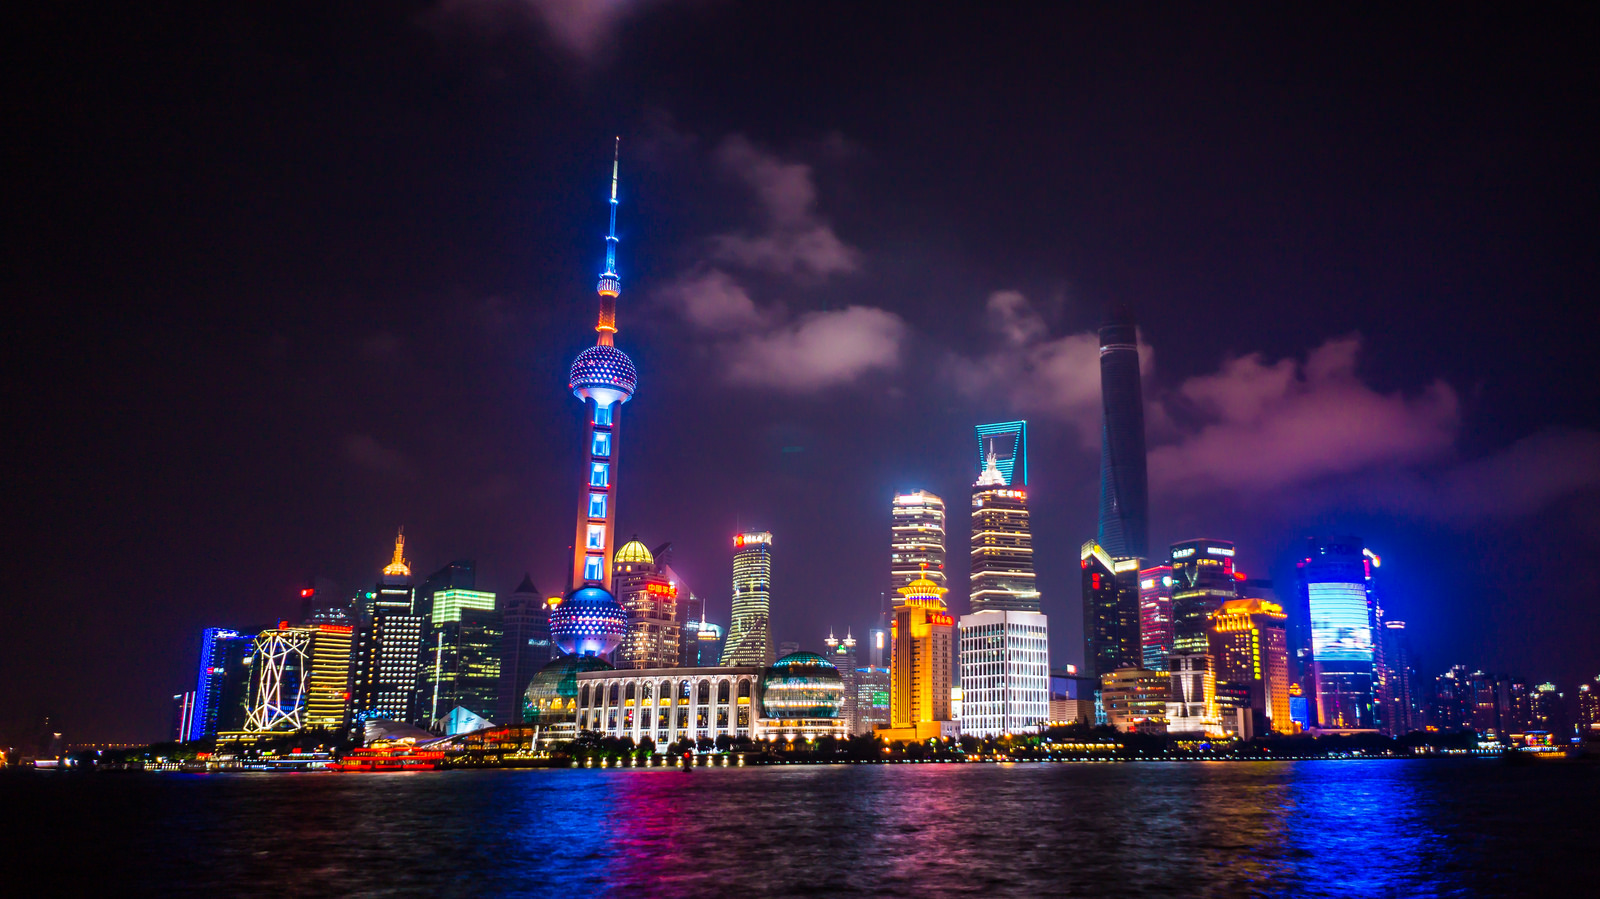 Shanghai Tower Reached Full Height In Its Construction And